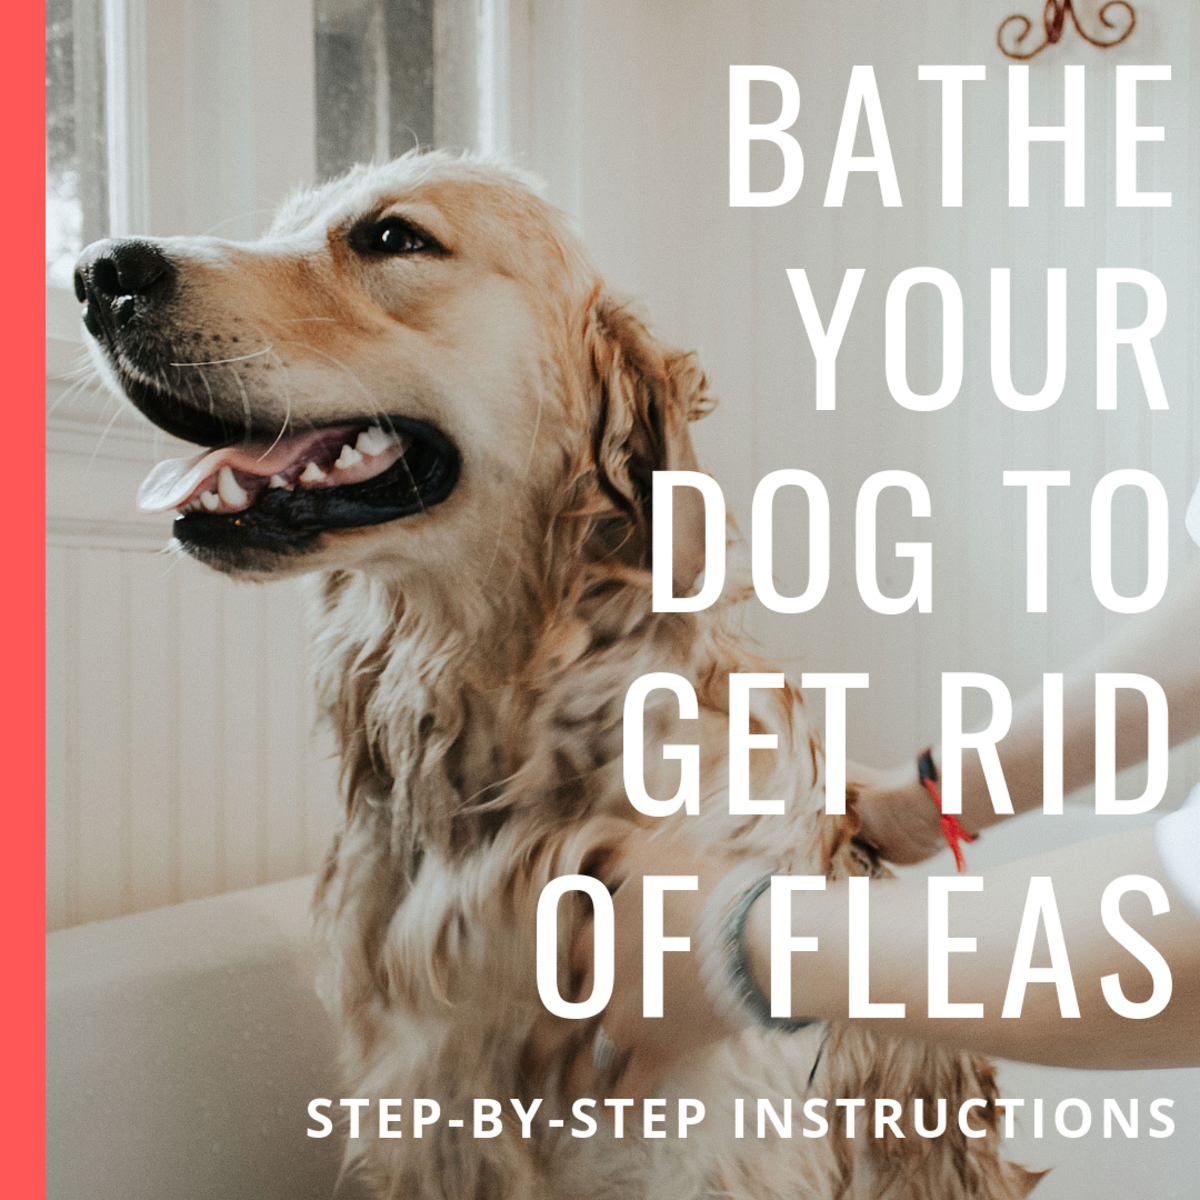 How to get rid of fleas naturally.